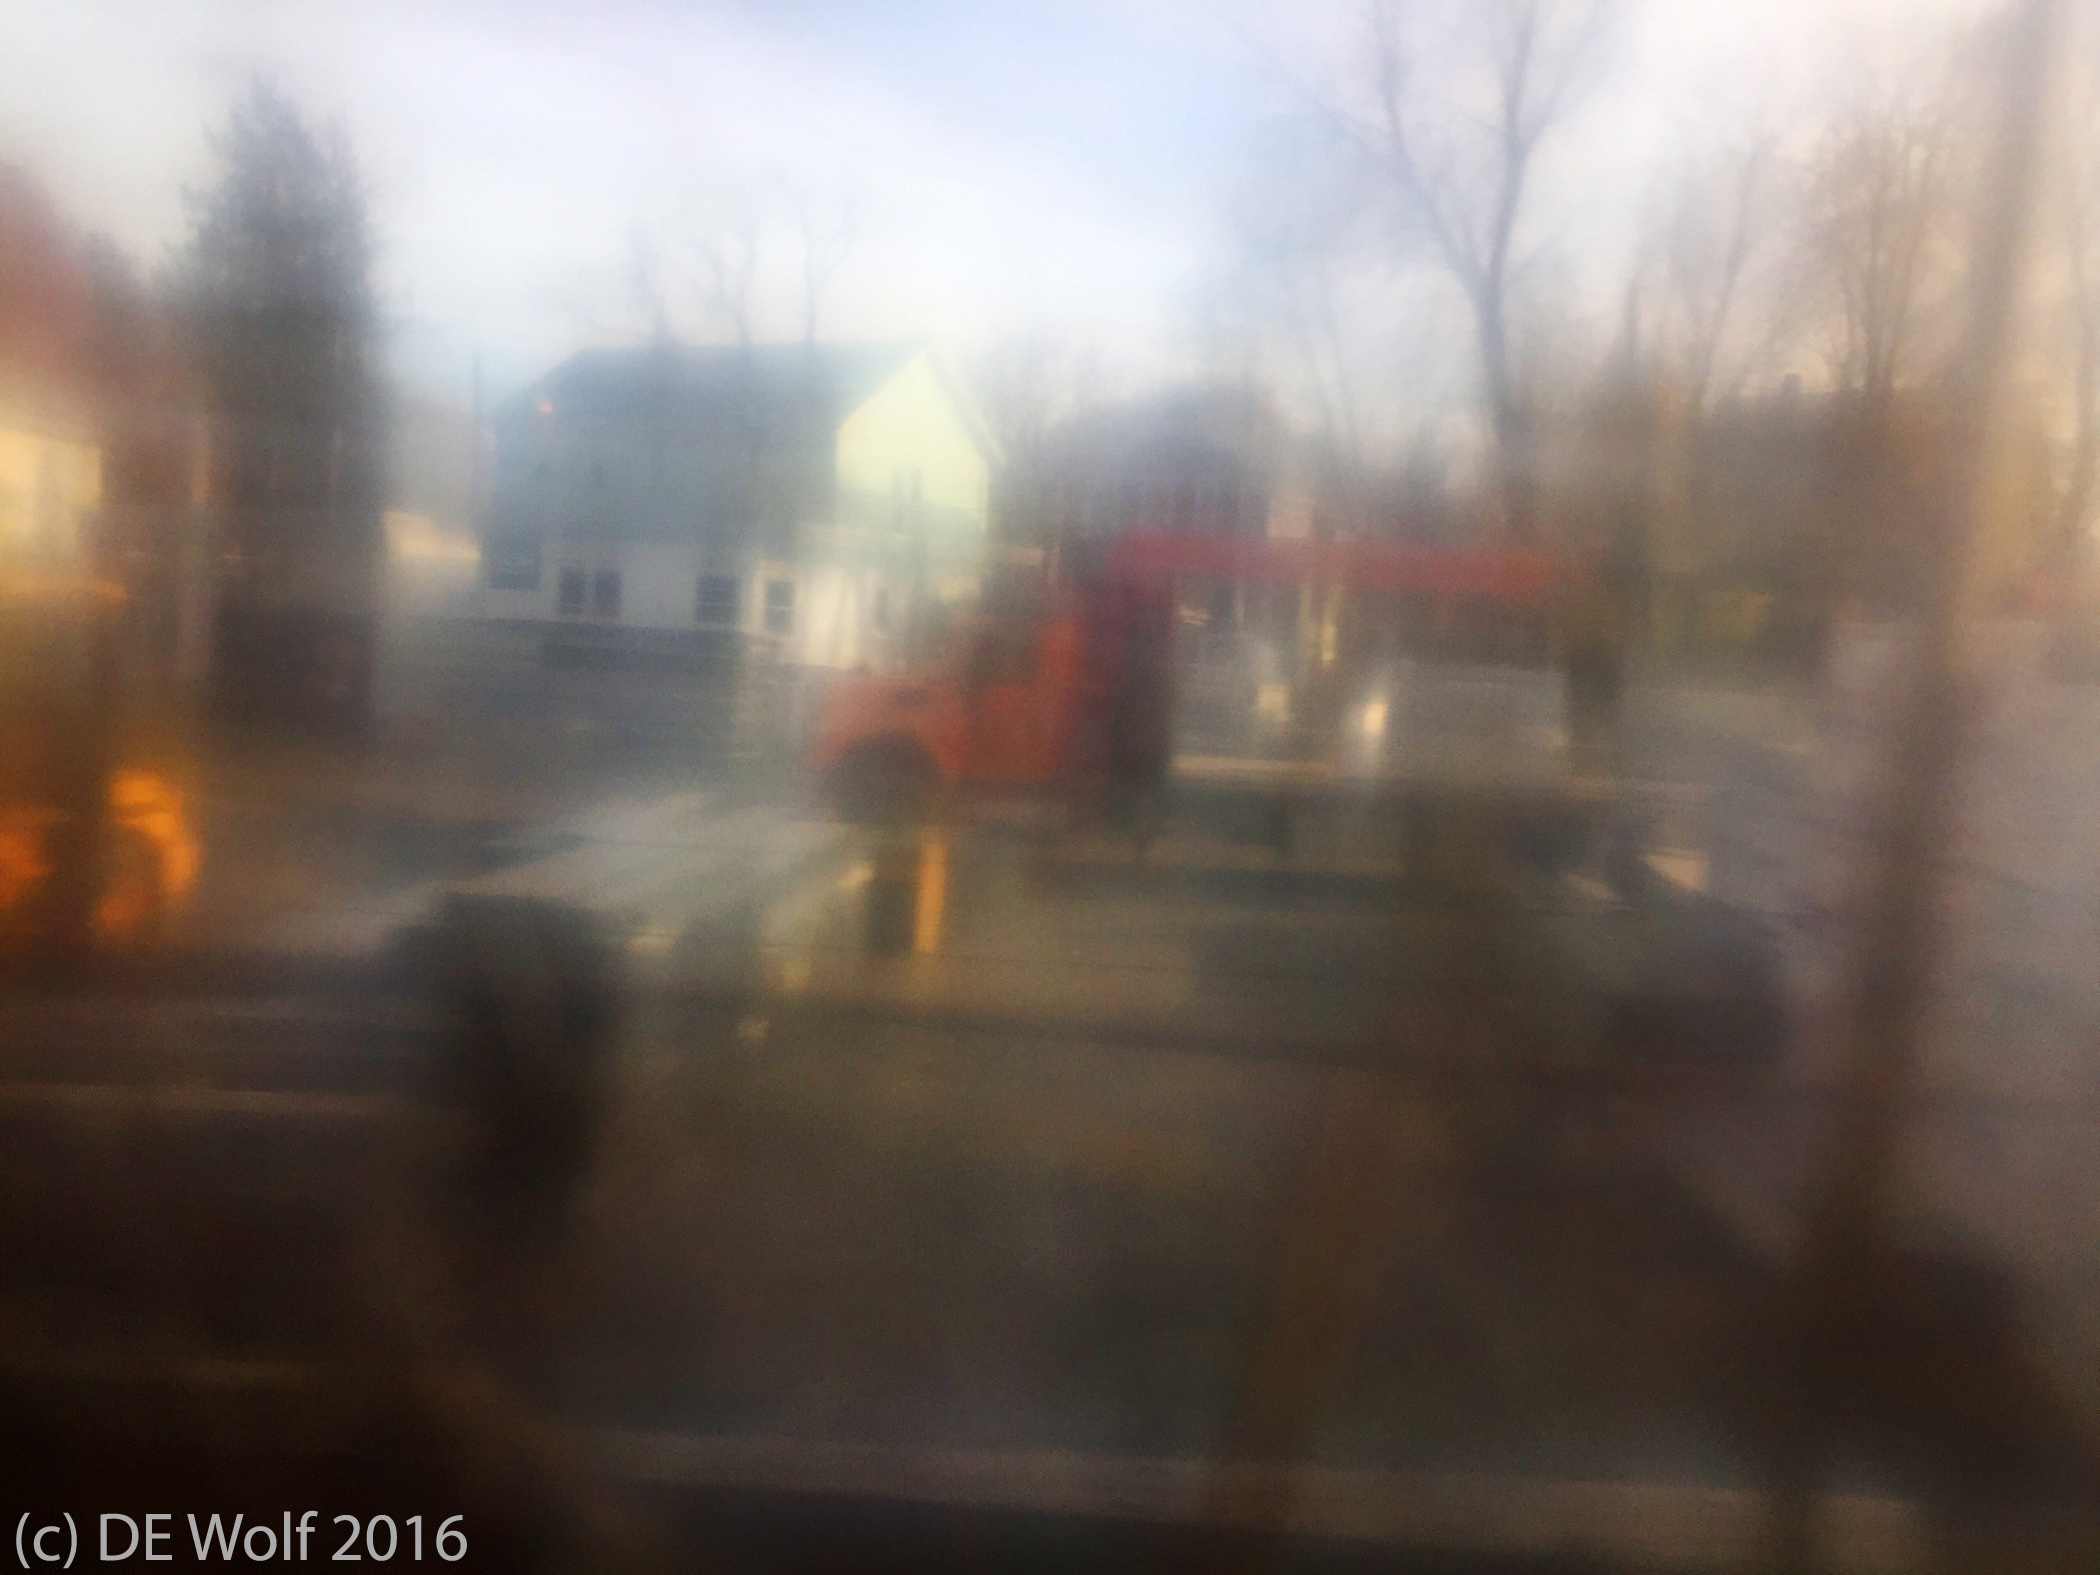 Figure 1 - Image through a dirty window on a moving train #2. IPhone photograph. (c) DE Wolf 2016.